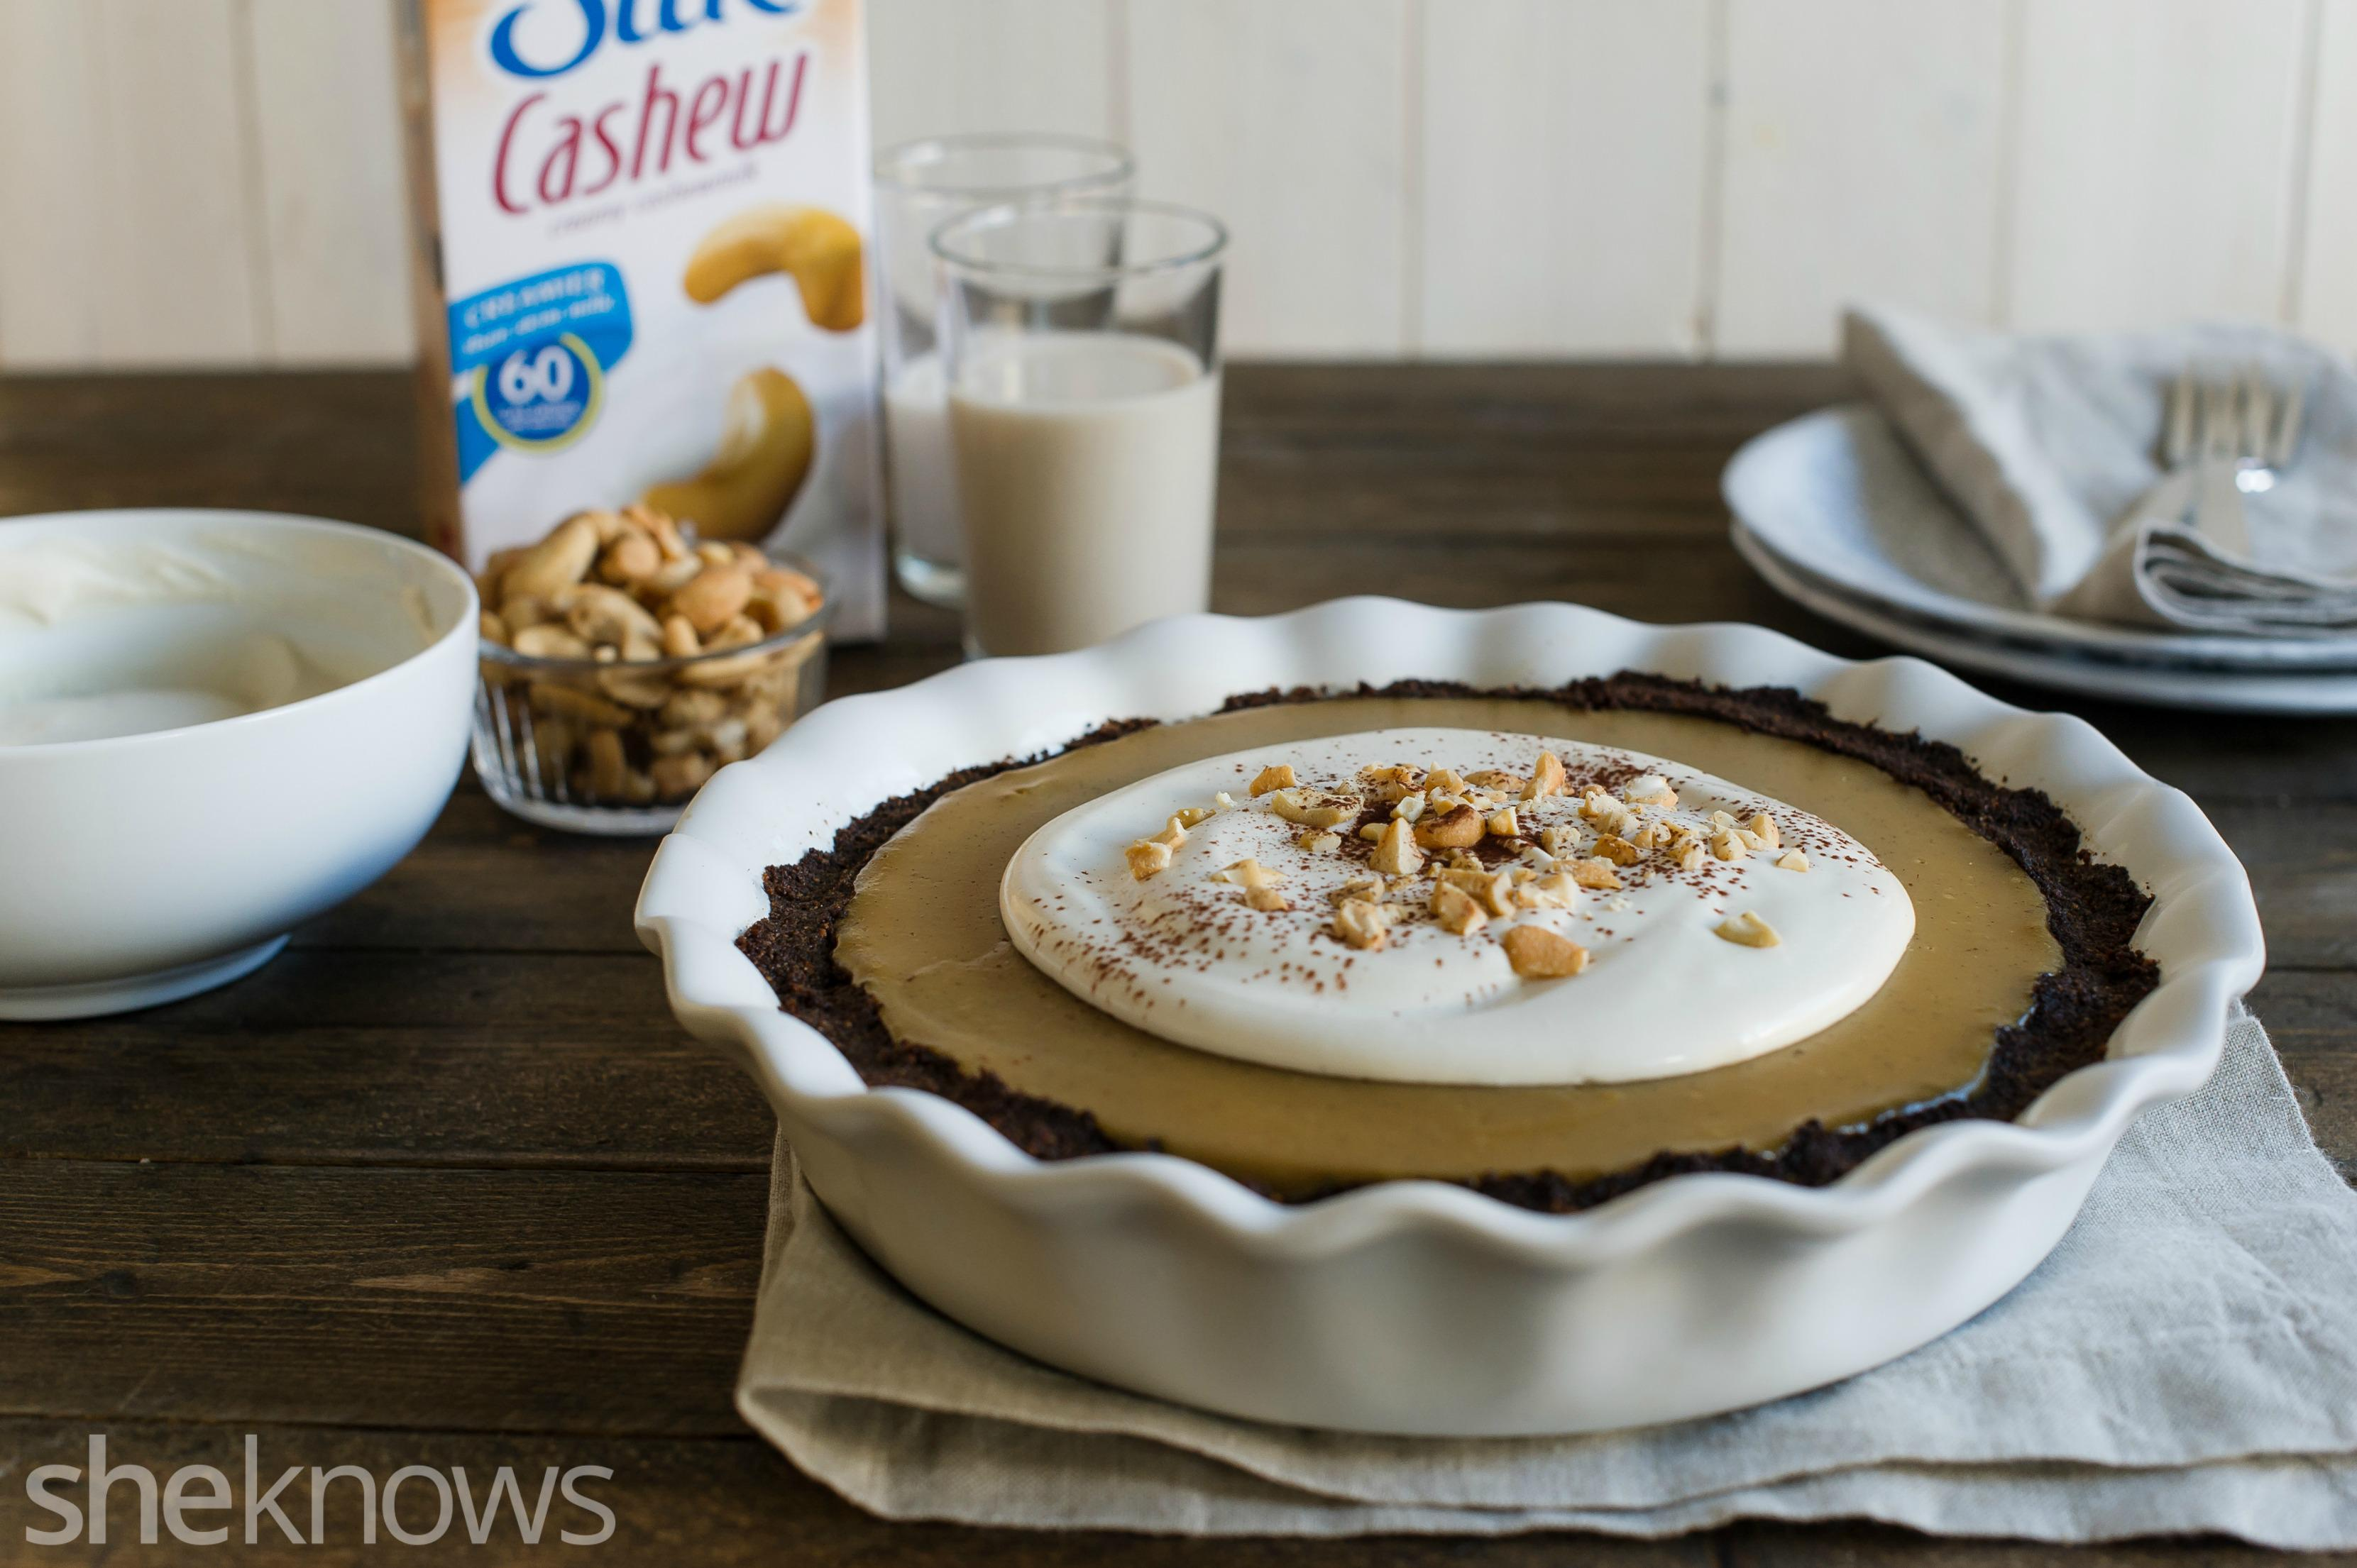 Cashew butterscotch pudding pie to indulge your sweet tooth